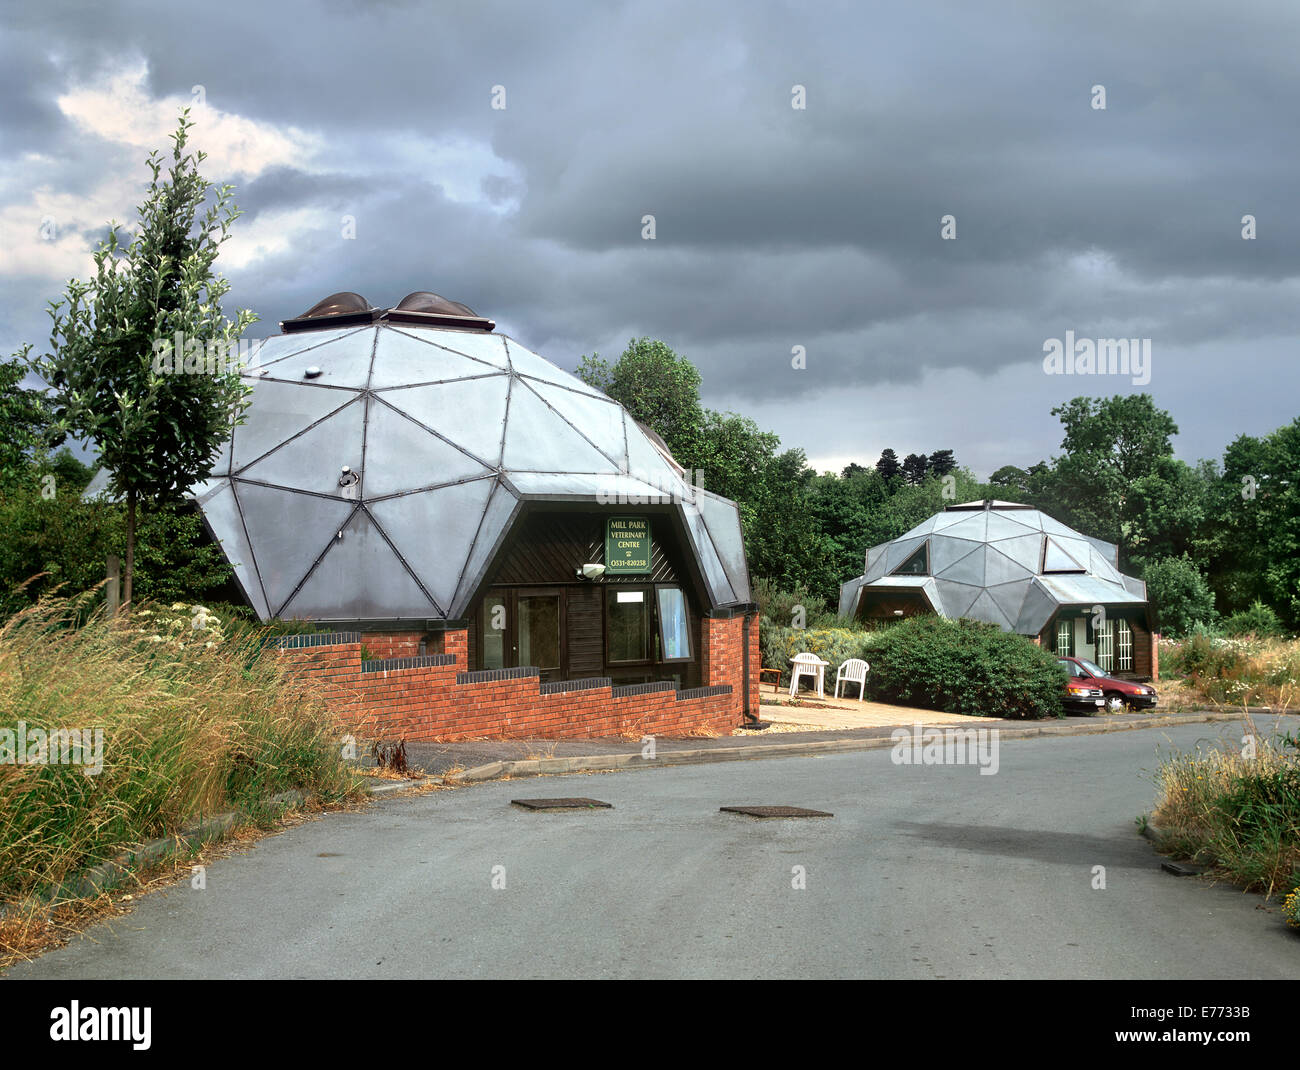 Geodesic domes housing the Mill Park Veterinary centre, Newent, Gloucestershire - Stock Image